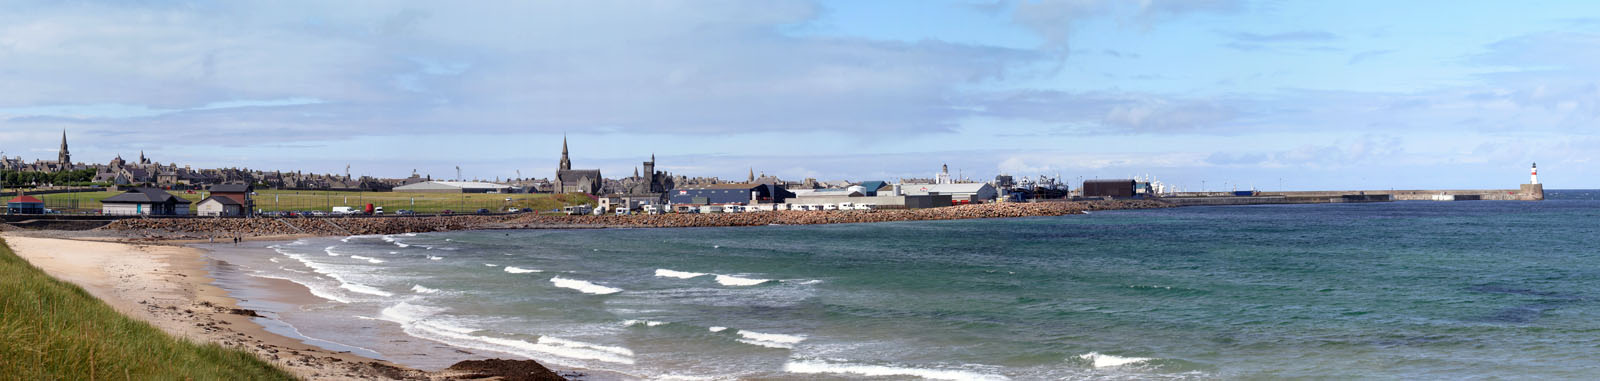 FRBRGH001 : The fishing town of Fraserburgh